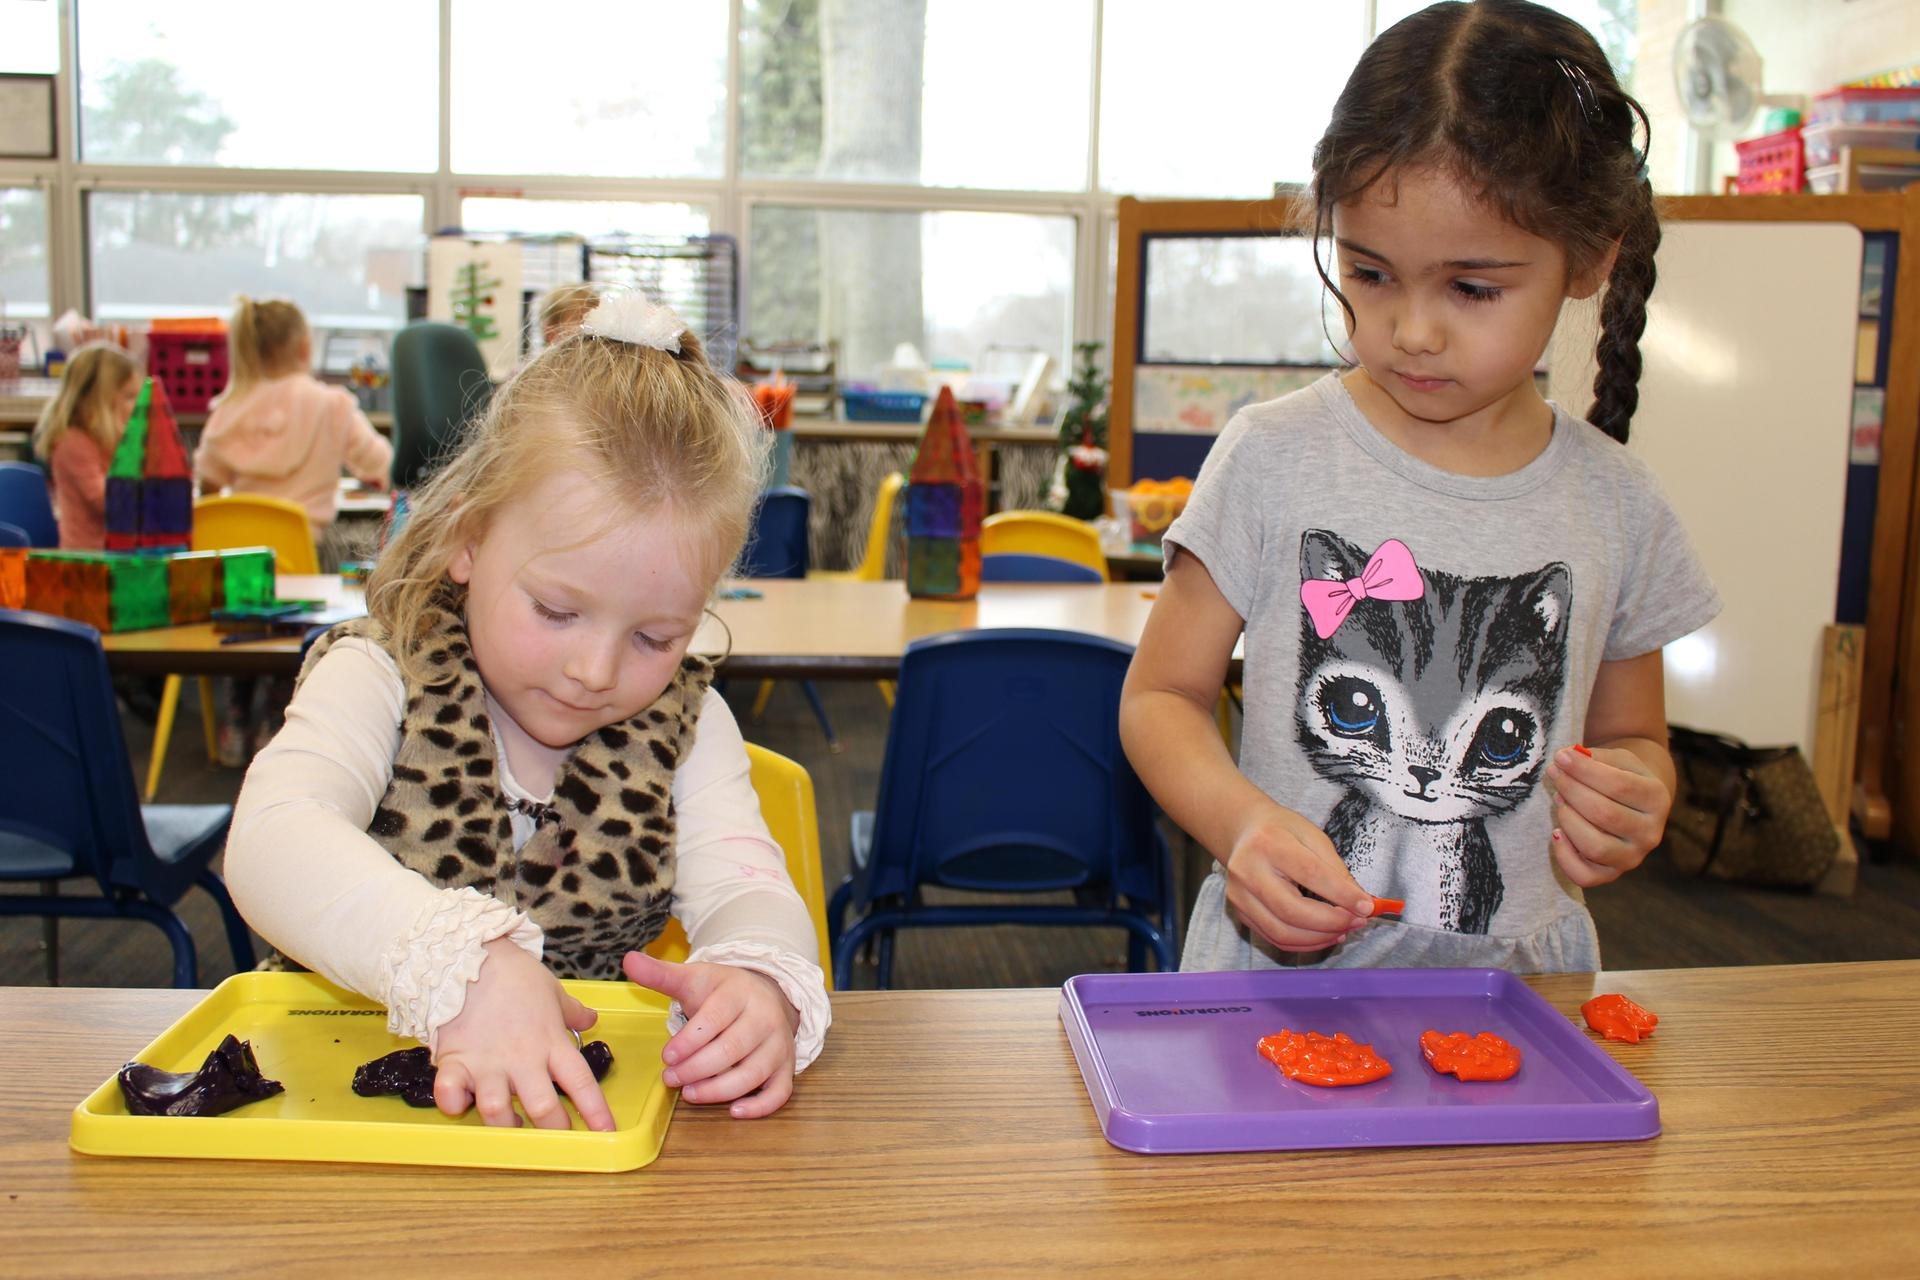 two girls play with preschool clay